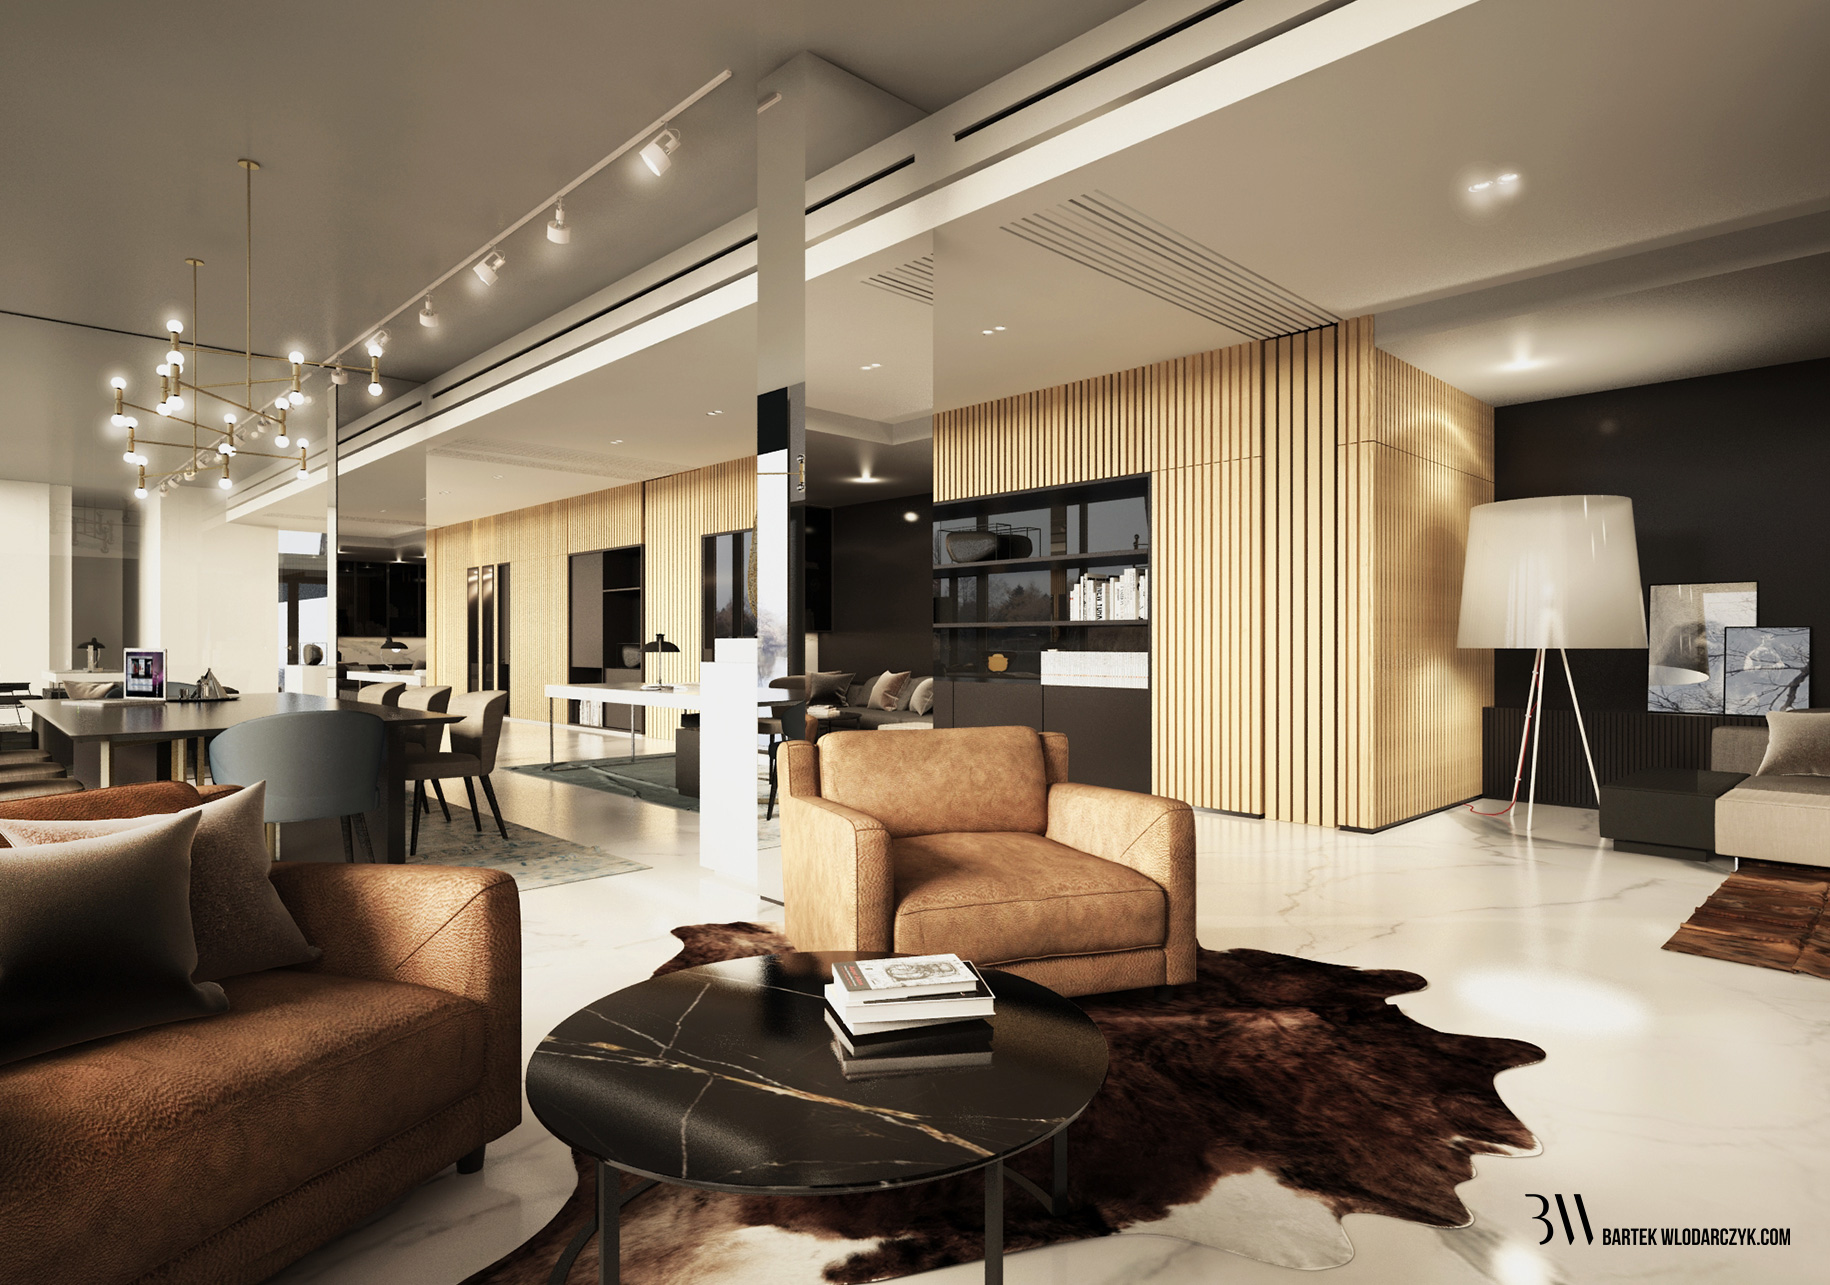 Top 25 Best Interior Designers in Warsaw top 25 best interior designers in warsaw Top 25 Best Interior Designers in Warsaw D2 1 meet the 25 best interior designers in warsaw Meet The 25 Best Interior Designers in Warsaw D2 1